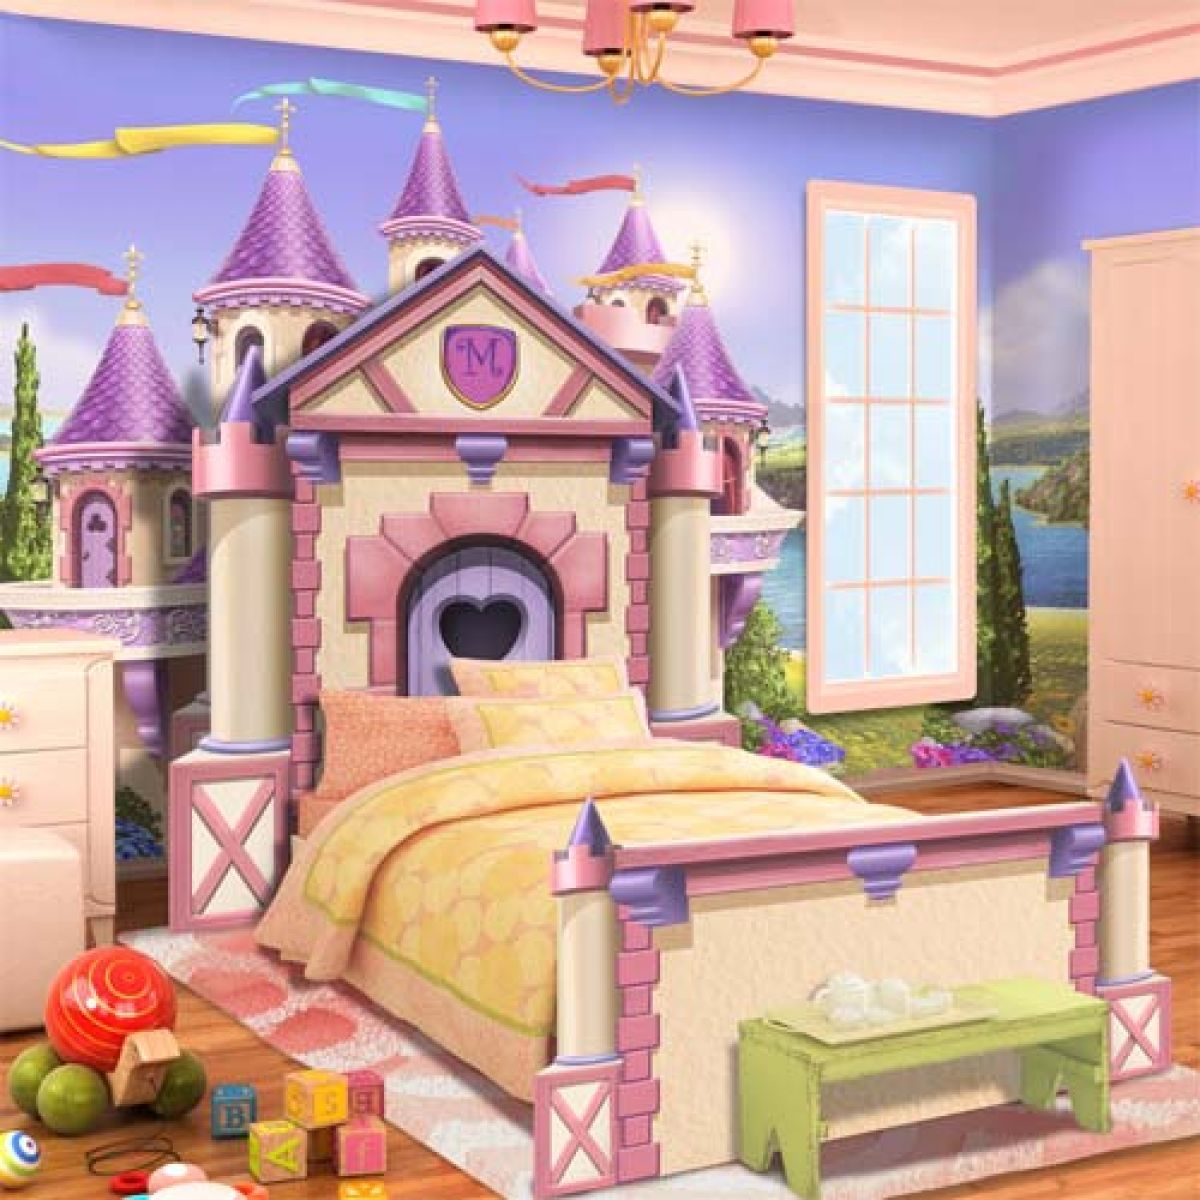 Merveilleux 10 Fantastic Ideas For Disney Inspired Childrenu0027s Rooms   Homes And Hues